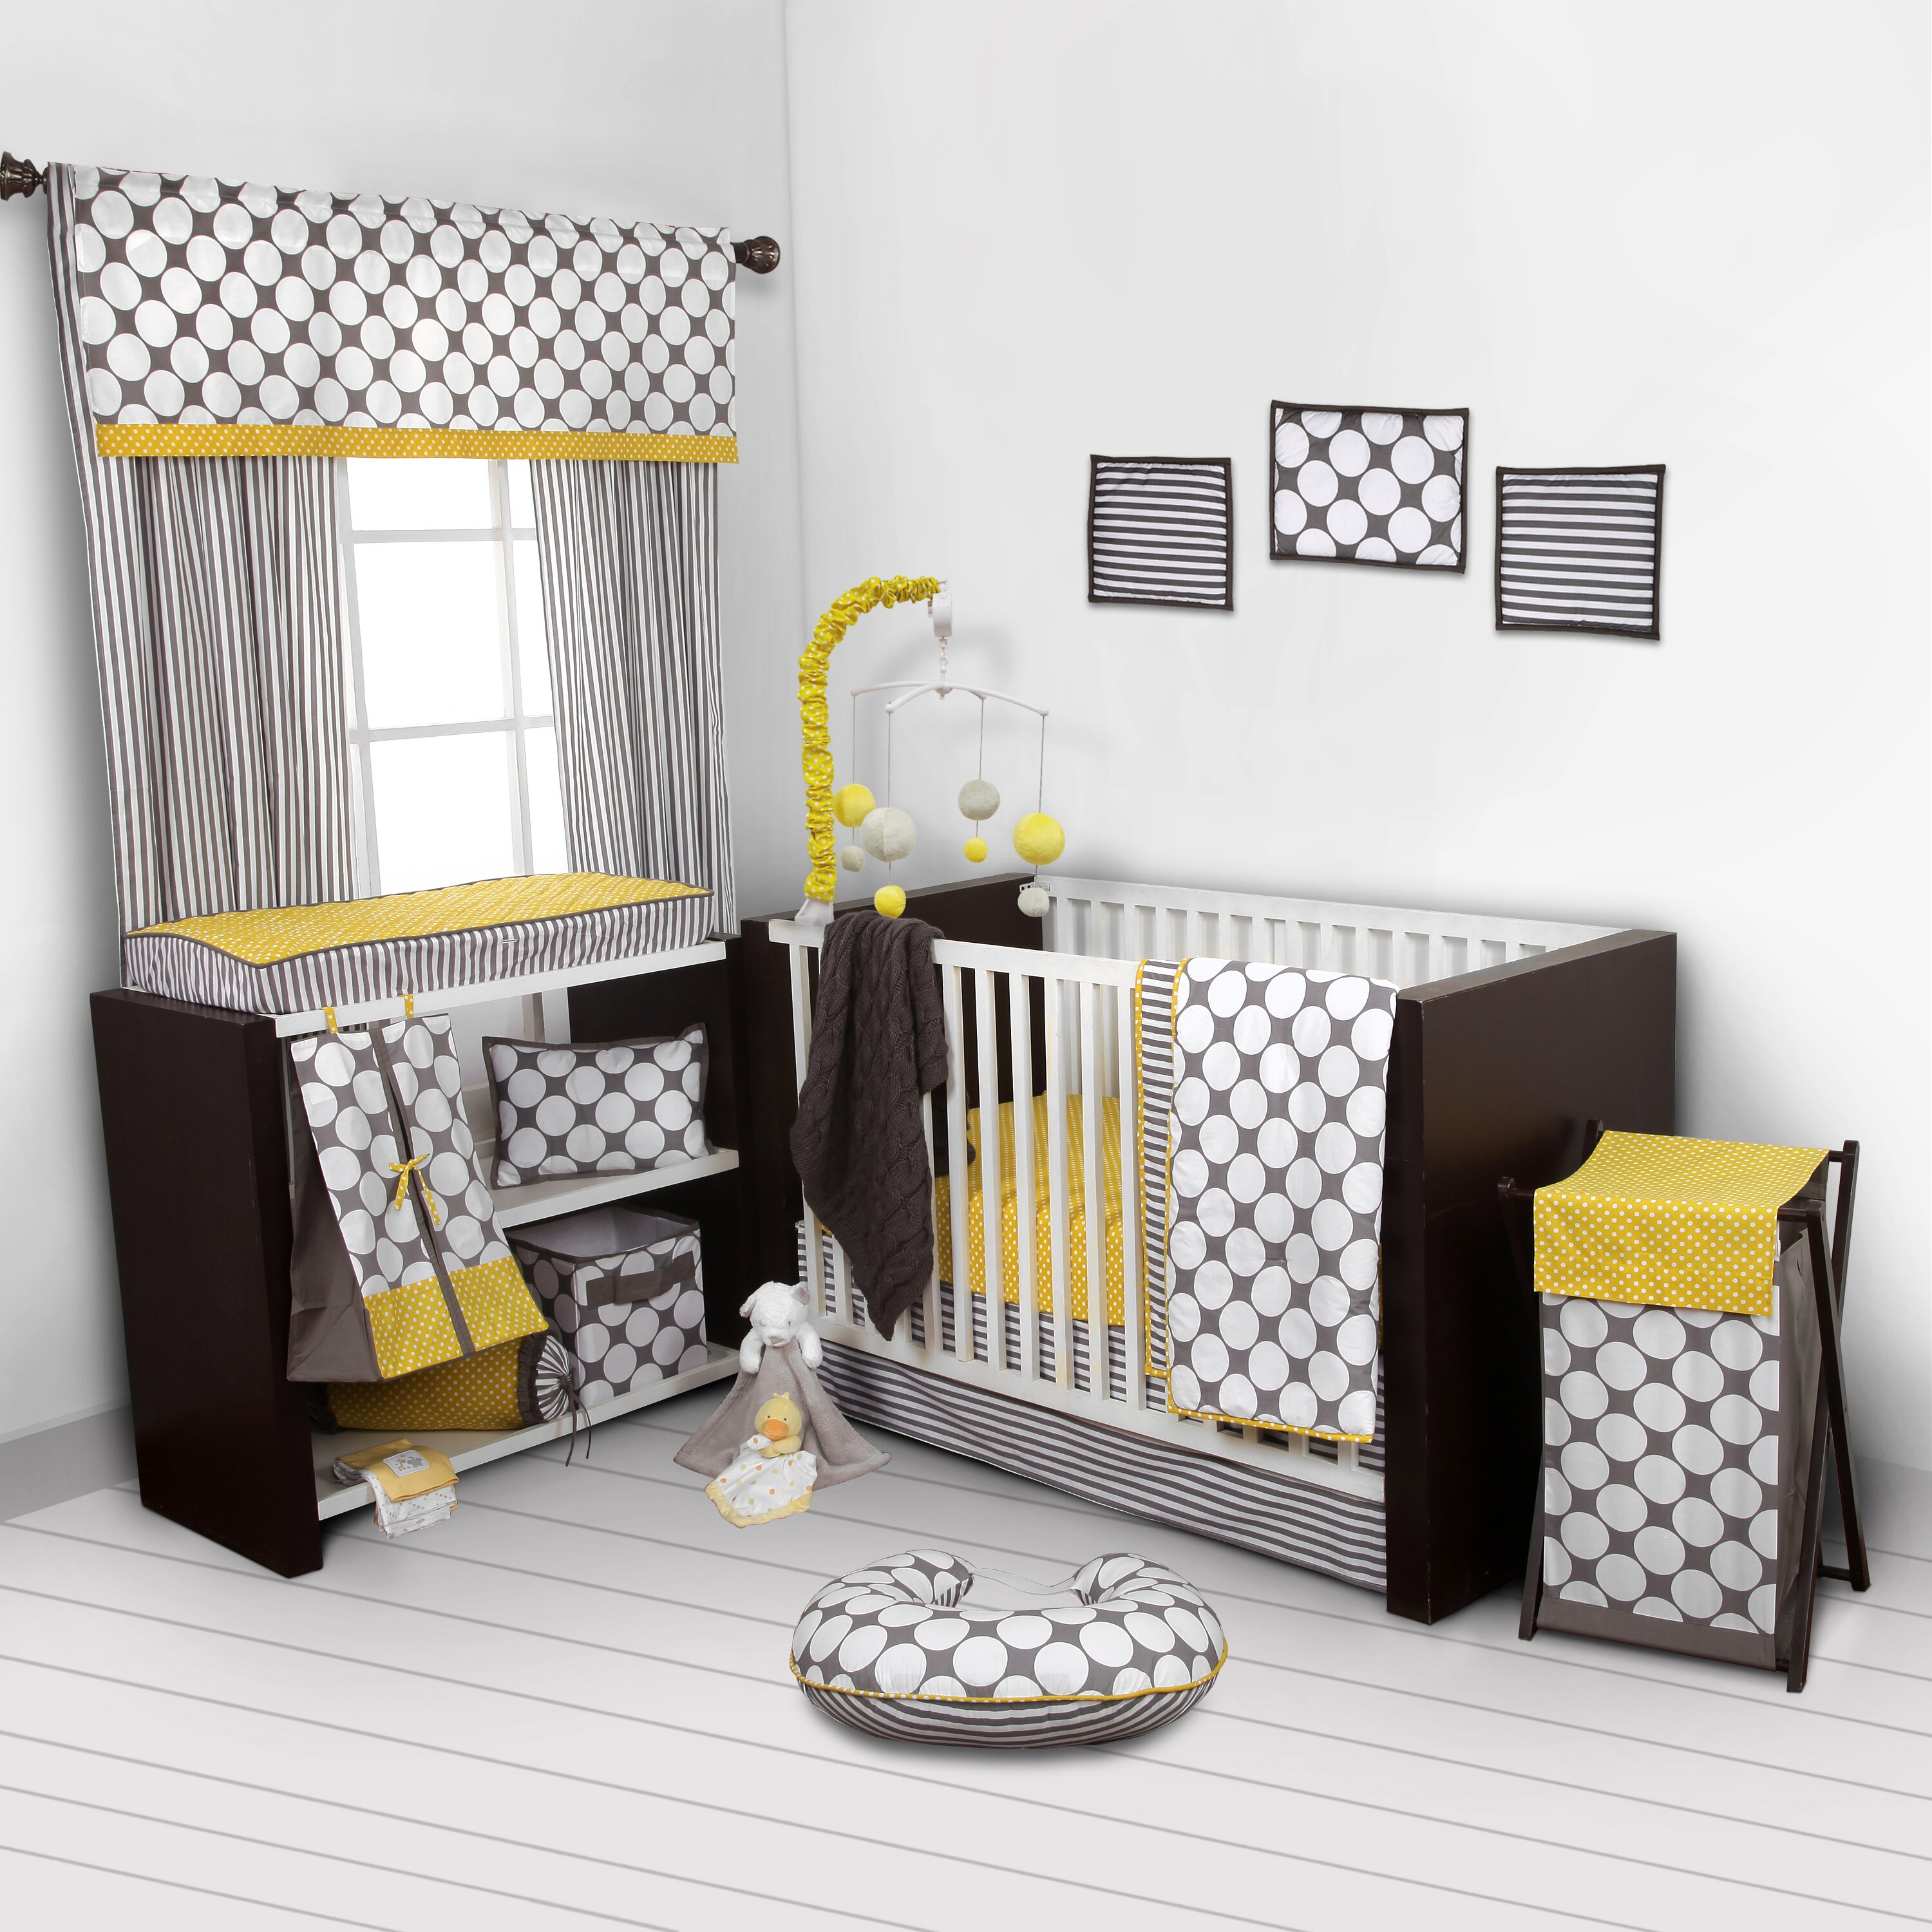 Gray and yellow window curtains - Gray And Yellow Window Curtains Bacati Dots Pin Stripes Window Curtain Valance